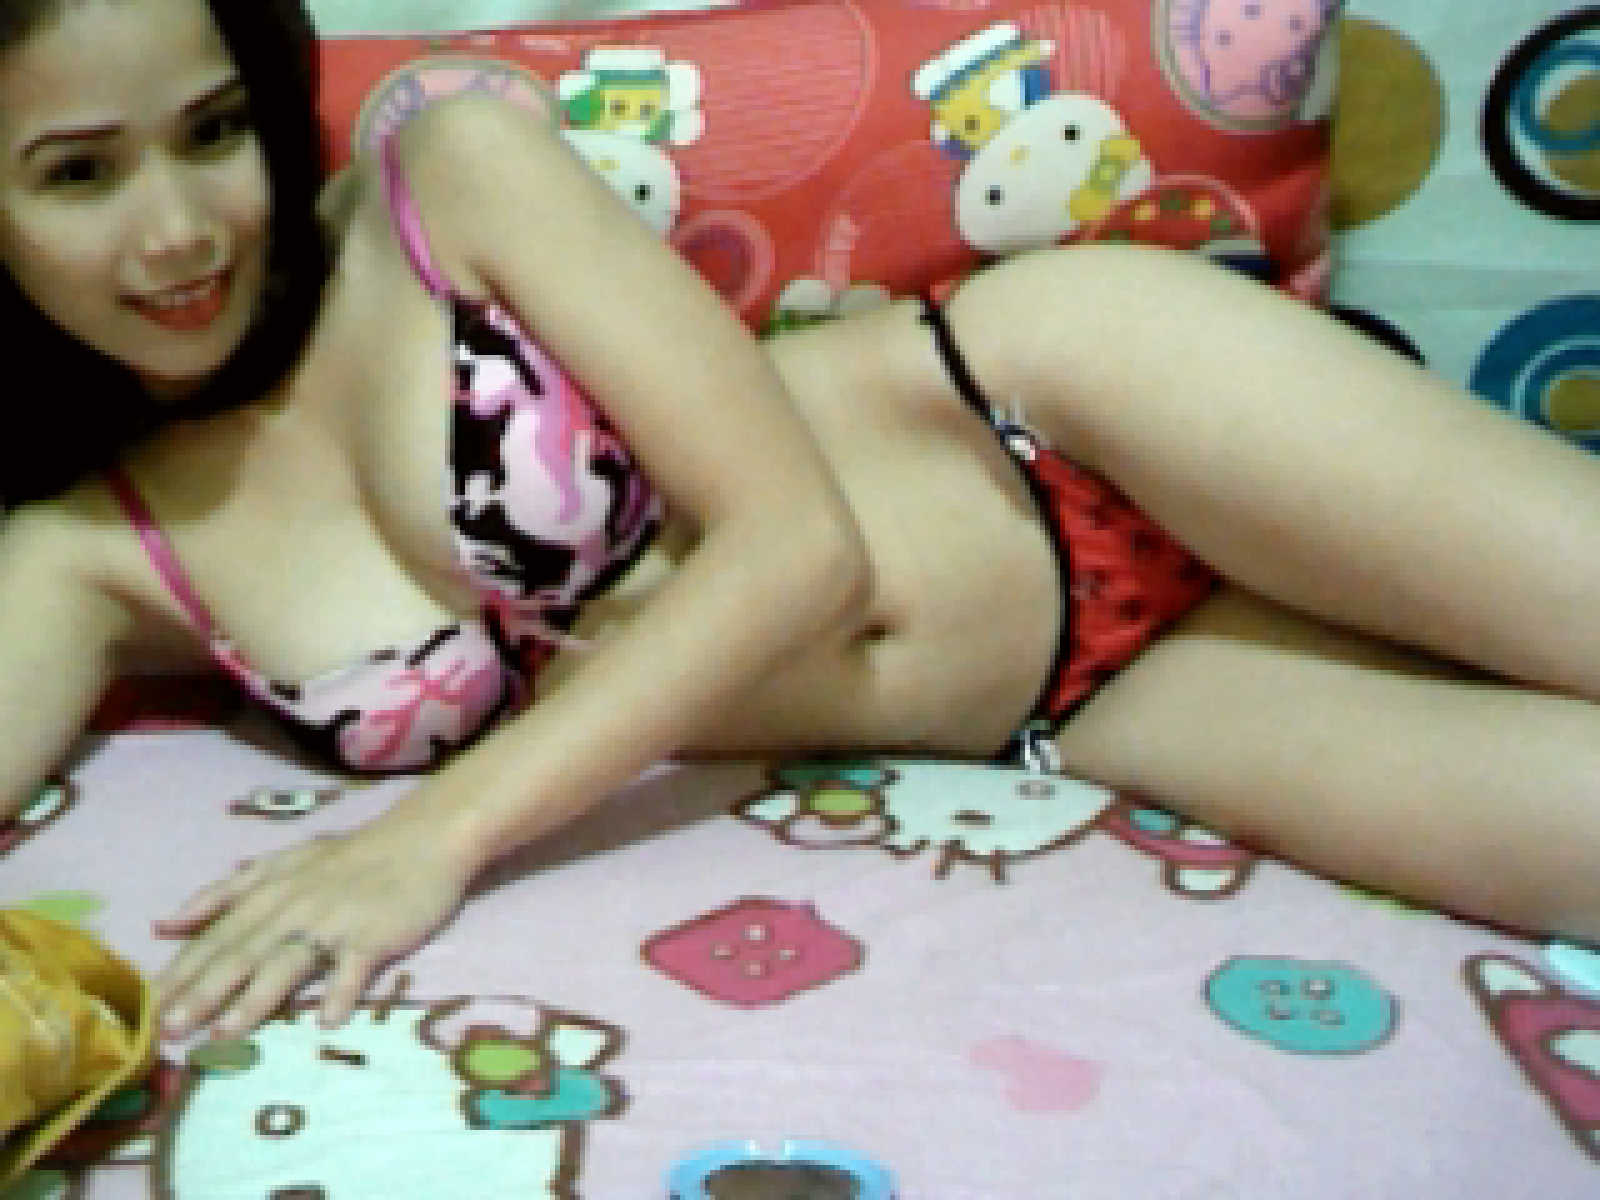 free live asian cams